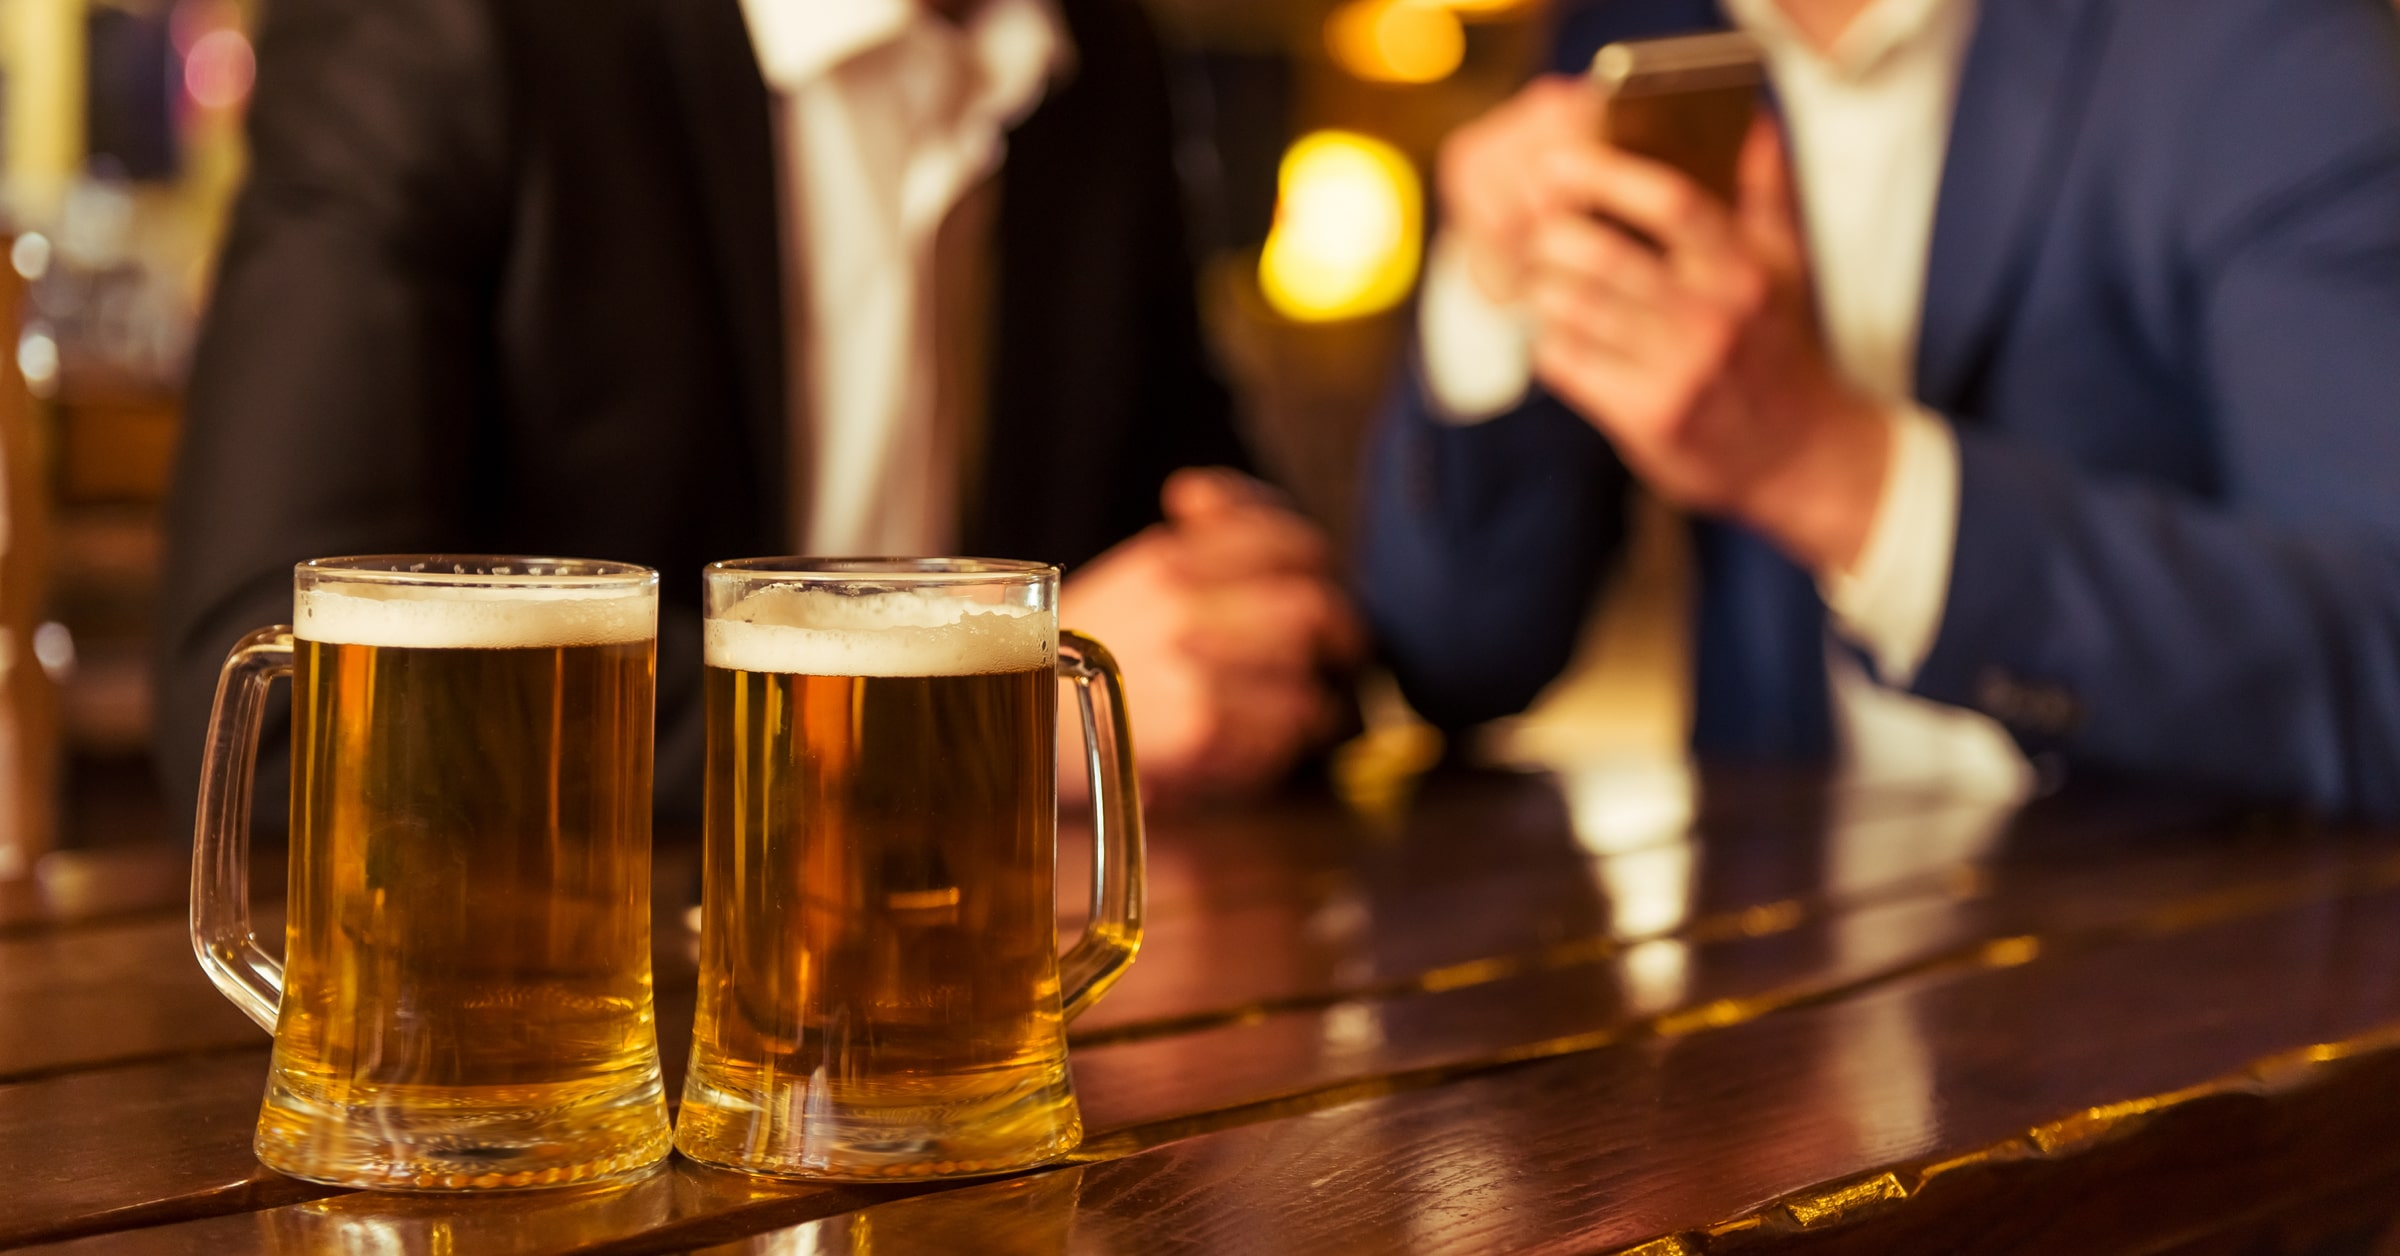 two beers on table and business men using digital pub technology